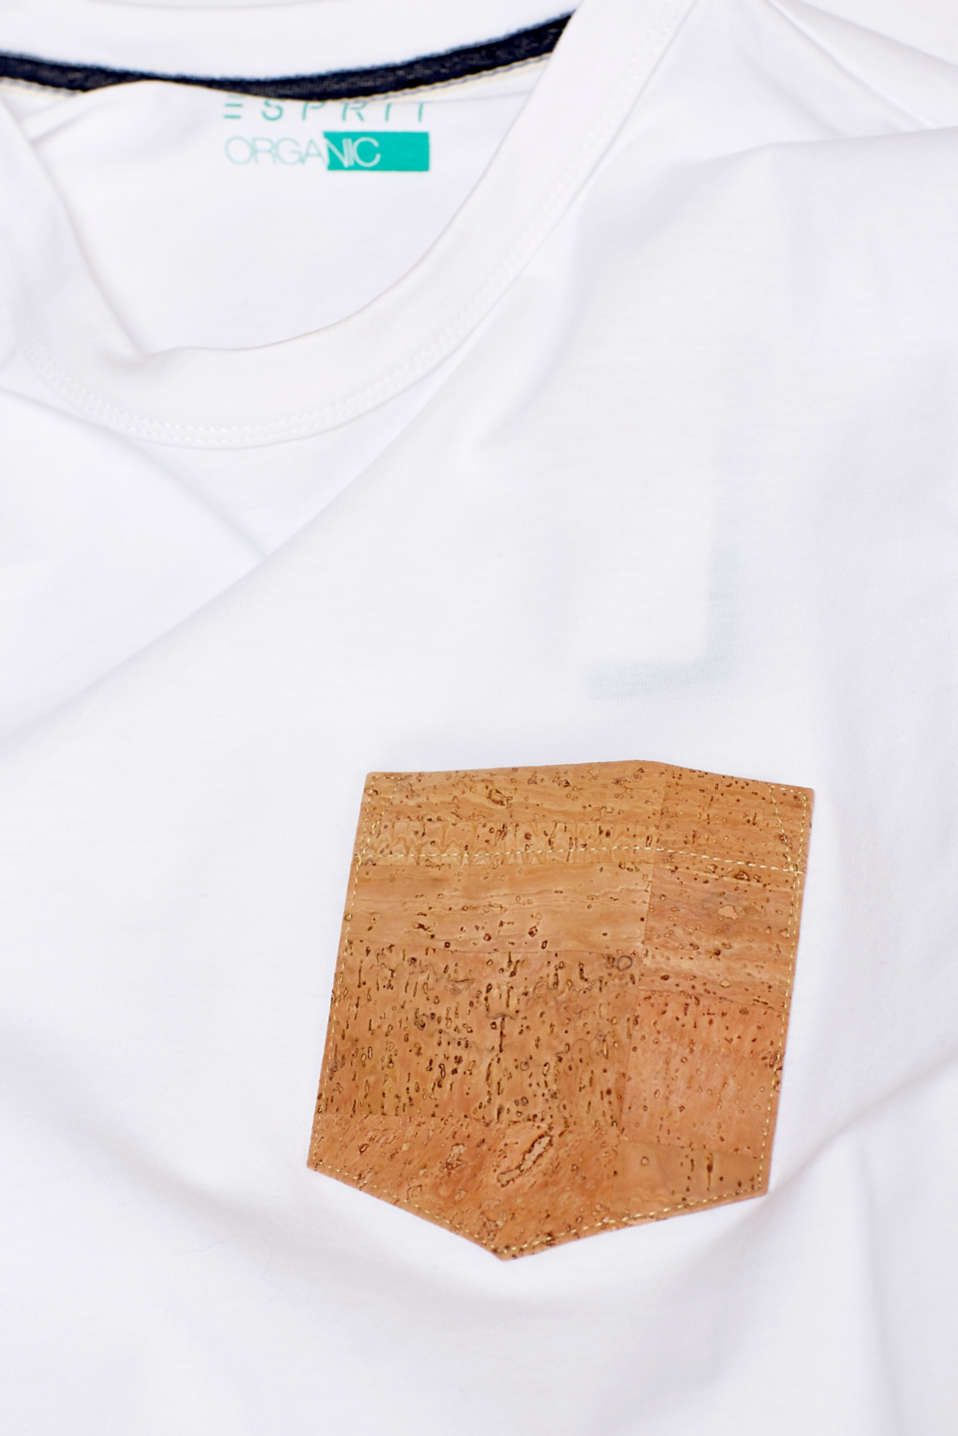 Jersey T-shirt with a patch breast pocket made of cork